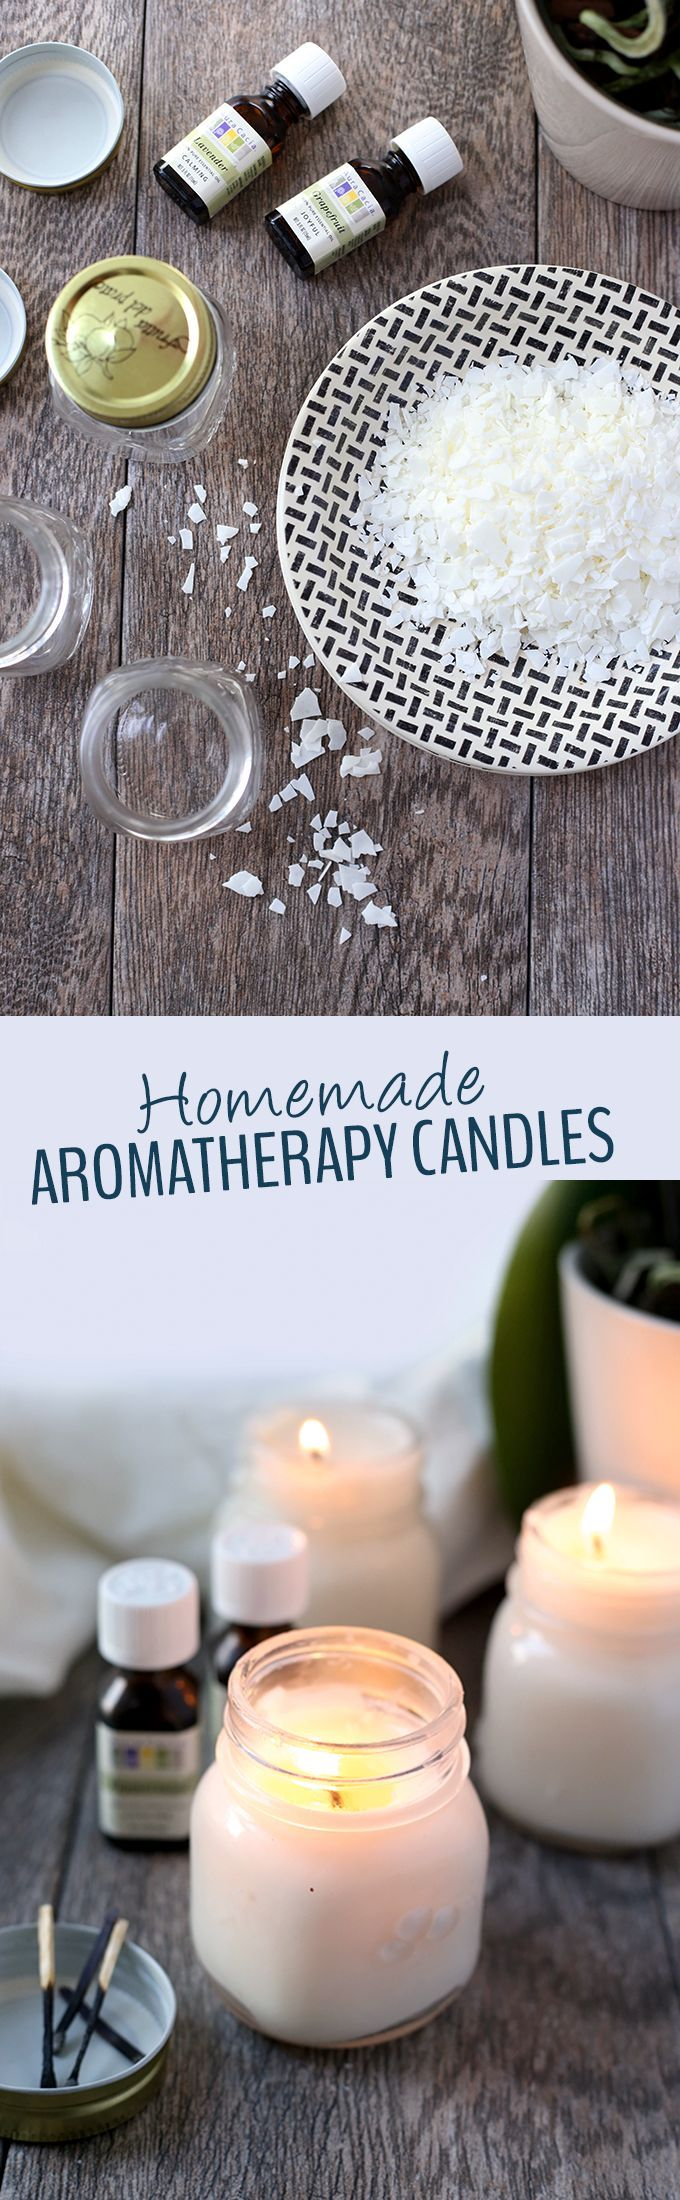 Who doesn't love candles? These Homemade Aromatherapy Candles make the ultimate relaxation gift and the perfect use for all of those old mason jars. You just need wax, wicks and essential oils.